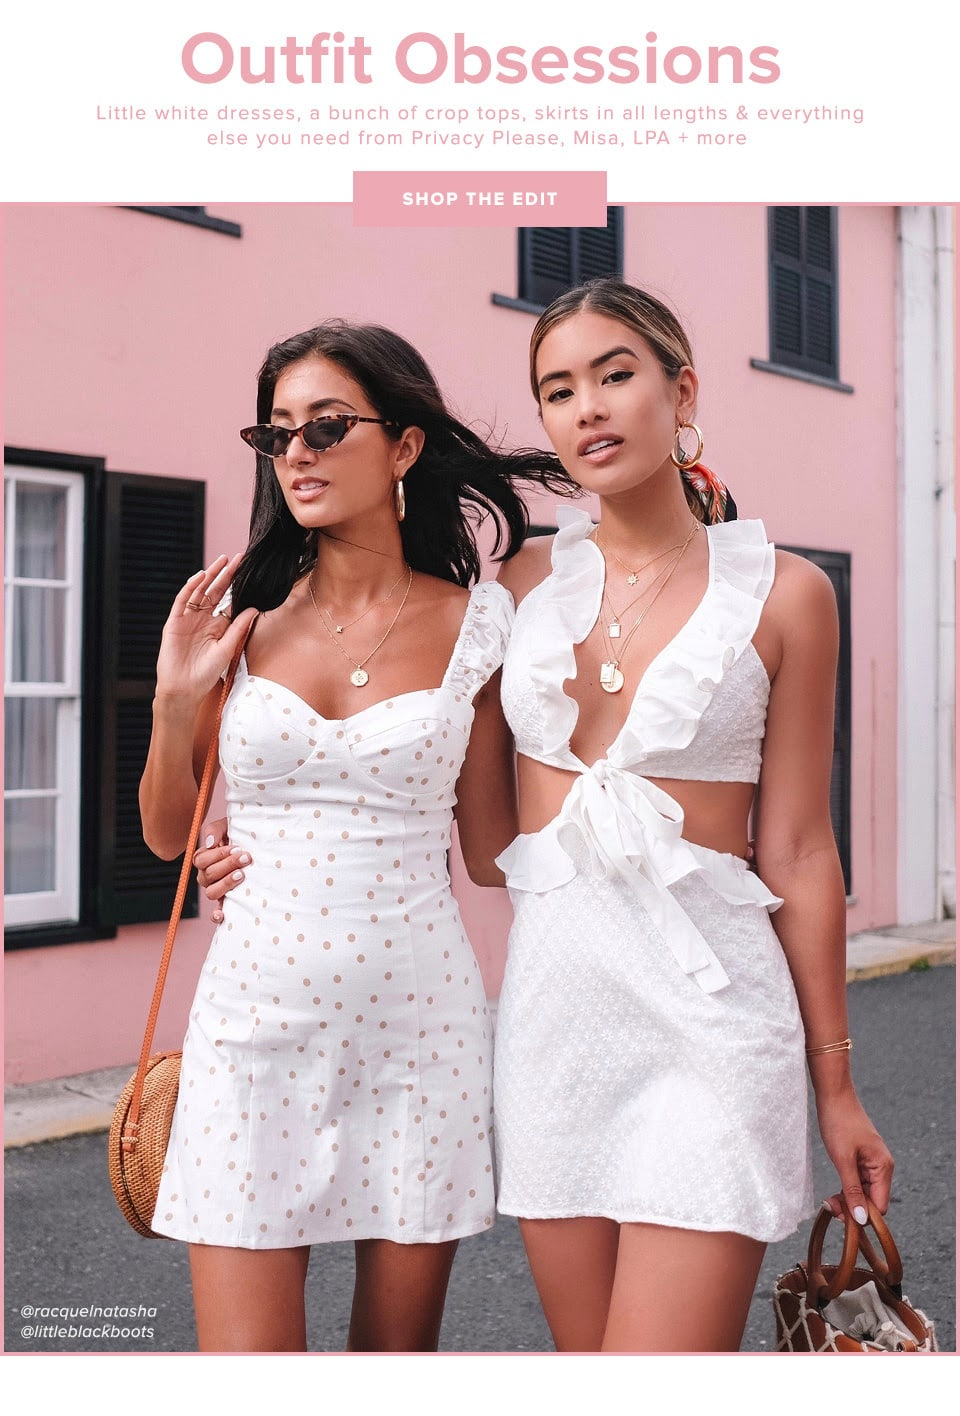 Outfit Obsessions. Little white dresses, a bunch of crop tops, skirts in all lengths & everything else you need from Privacy Please, Misa, LPA + more. Shop the Edit.